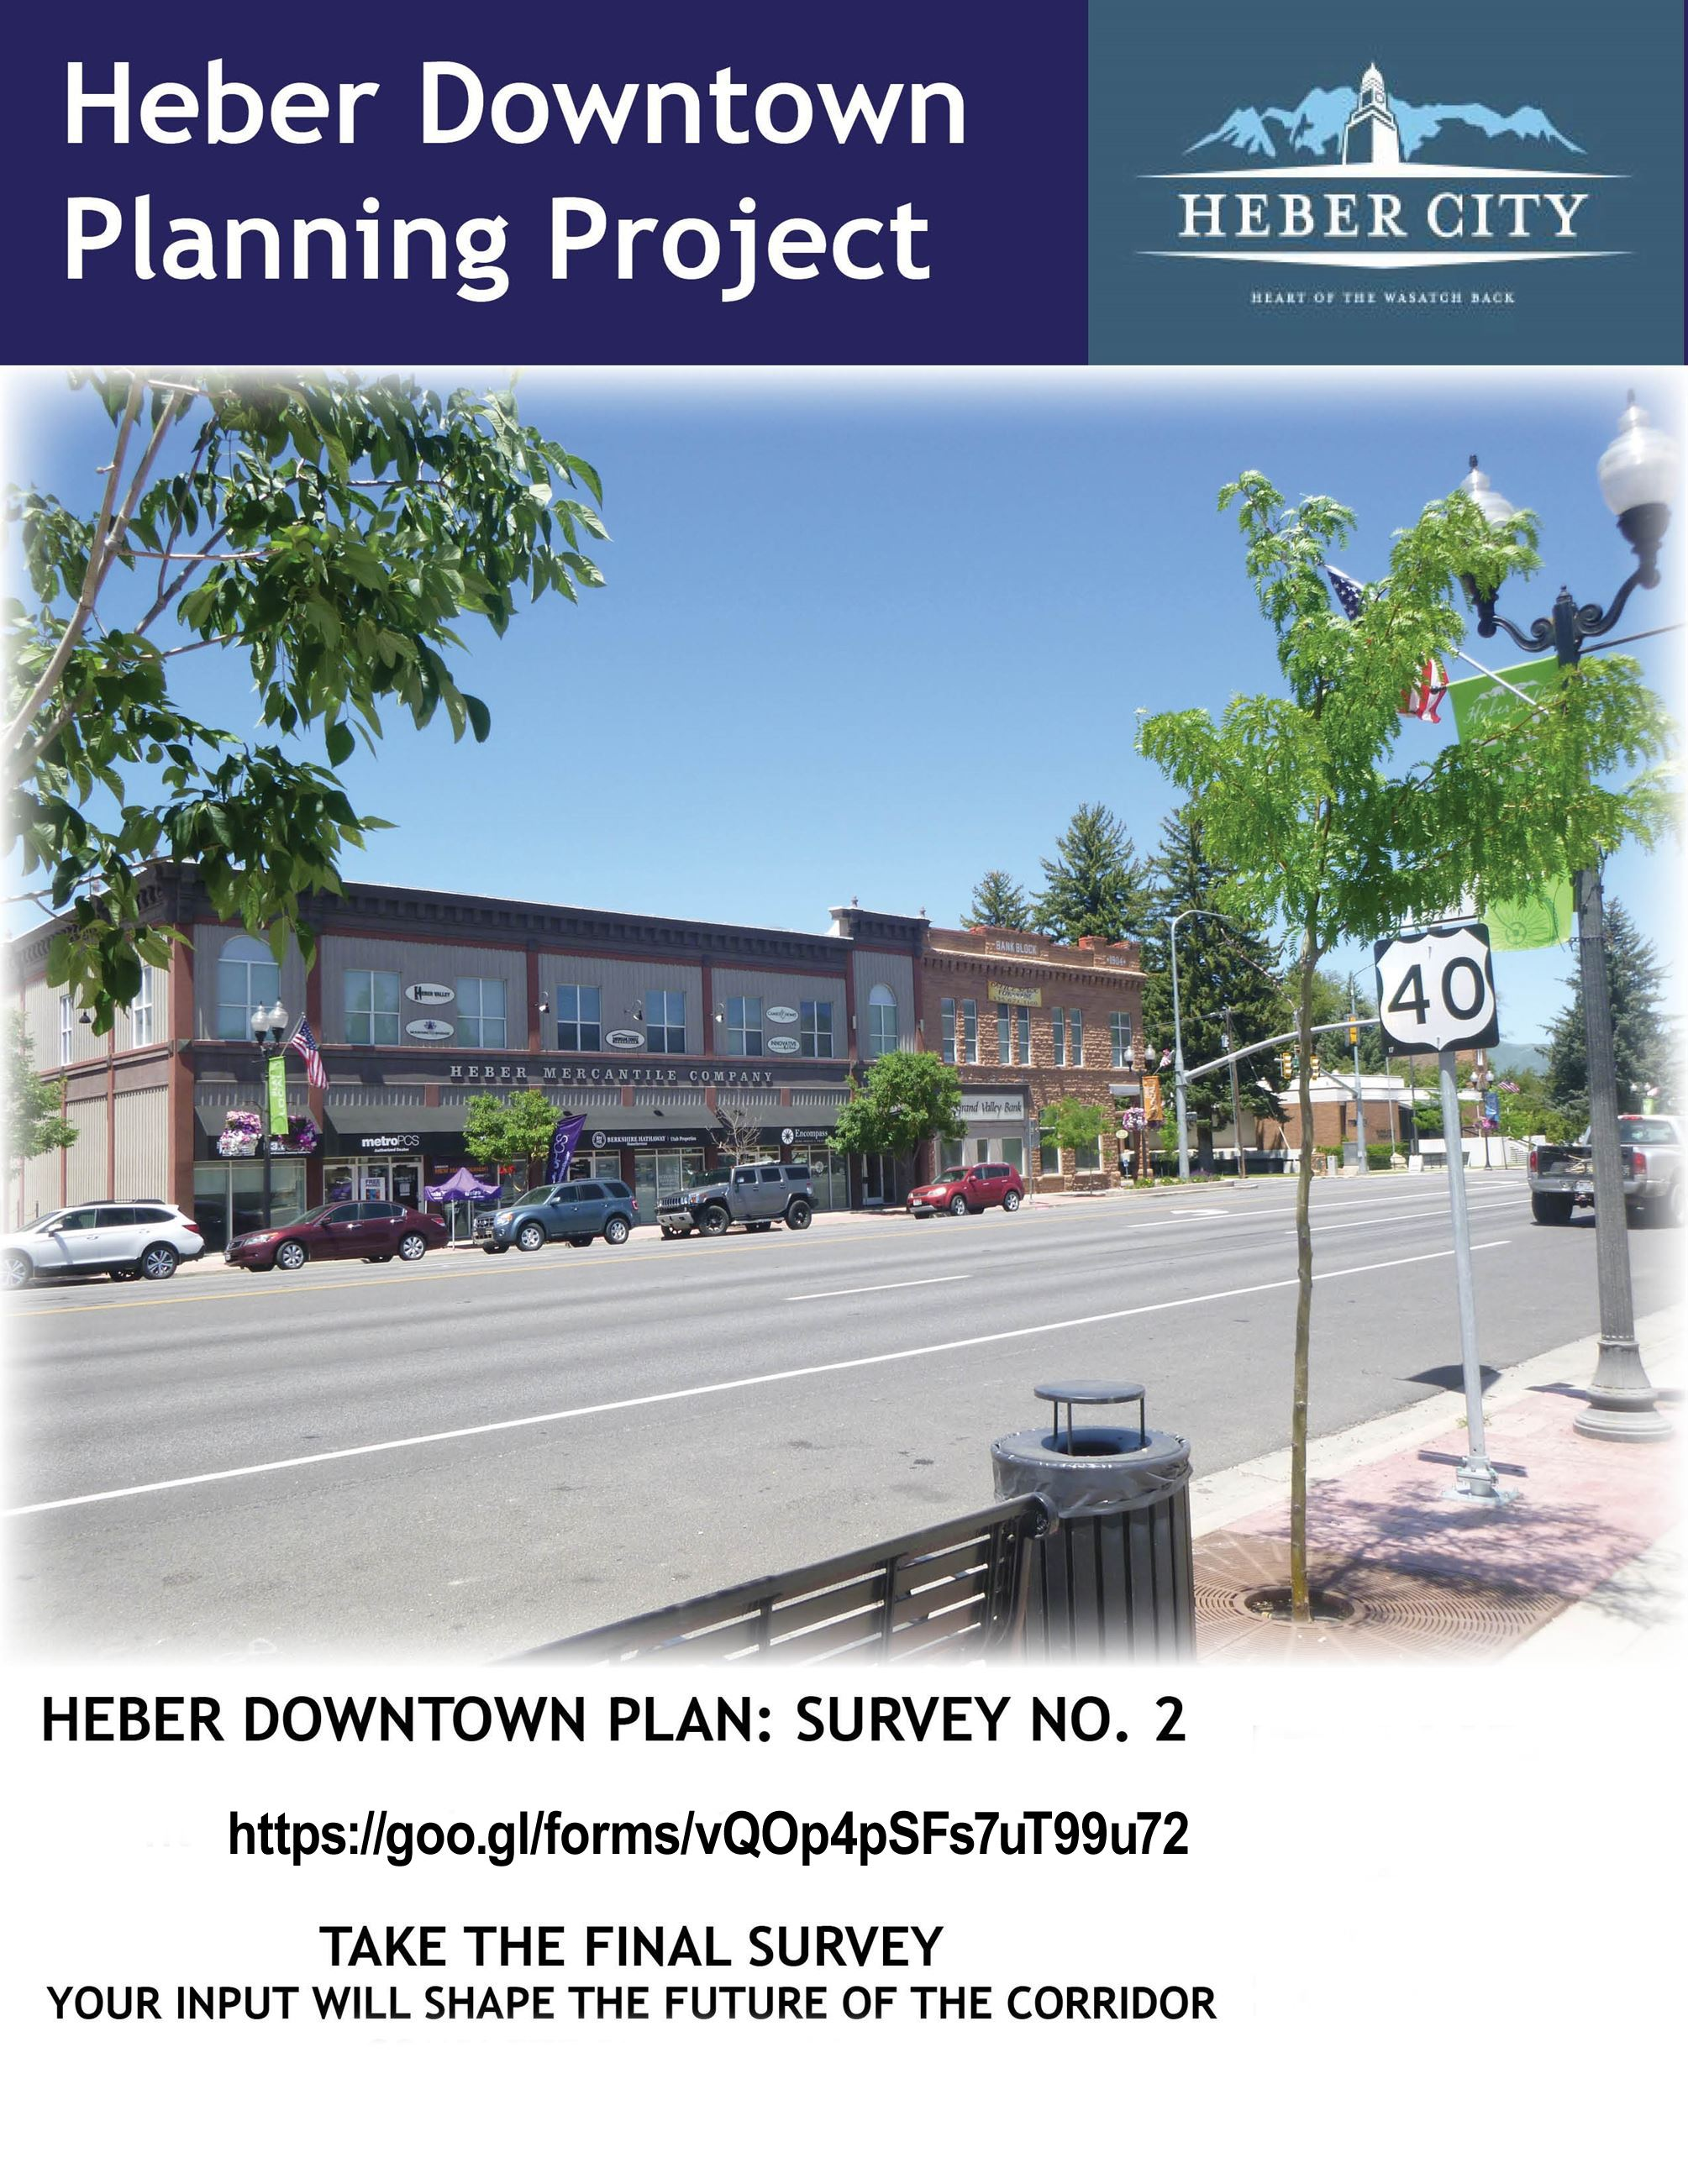 UDOT Heber Downtown Planning Project Survey 2